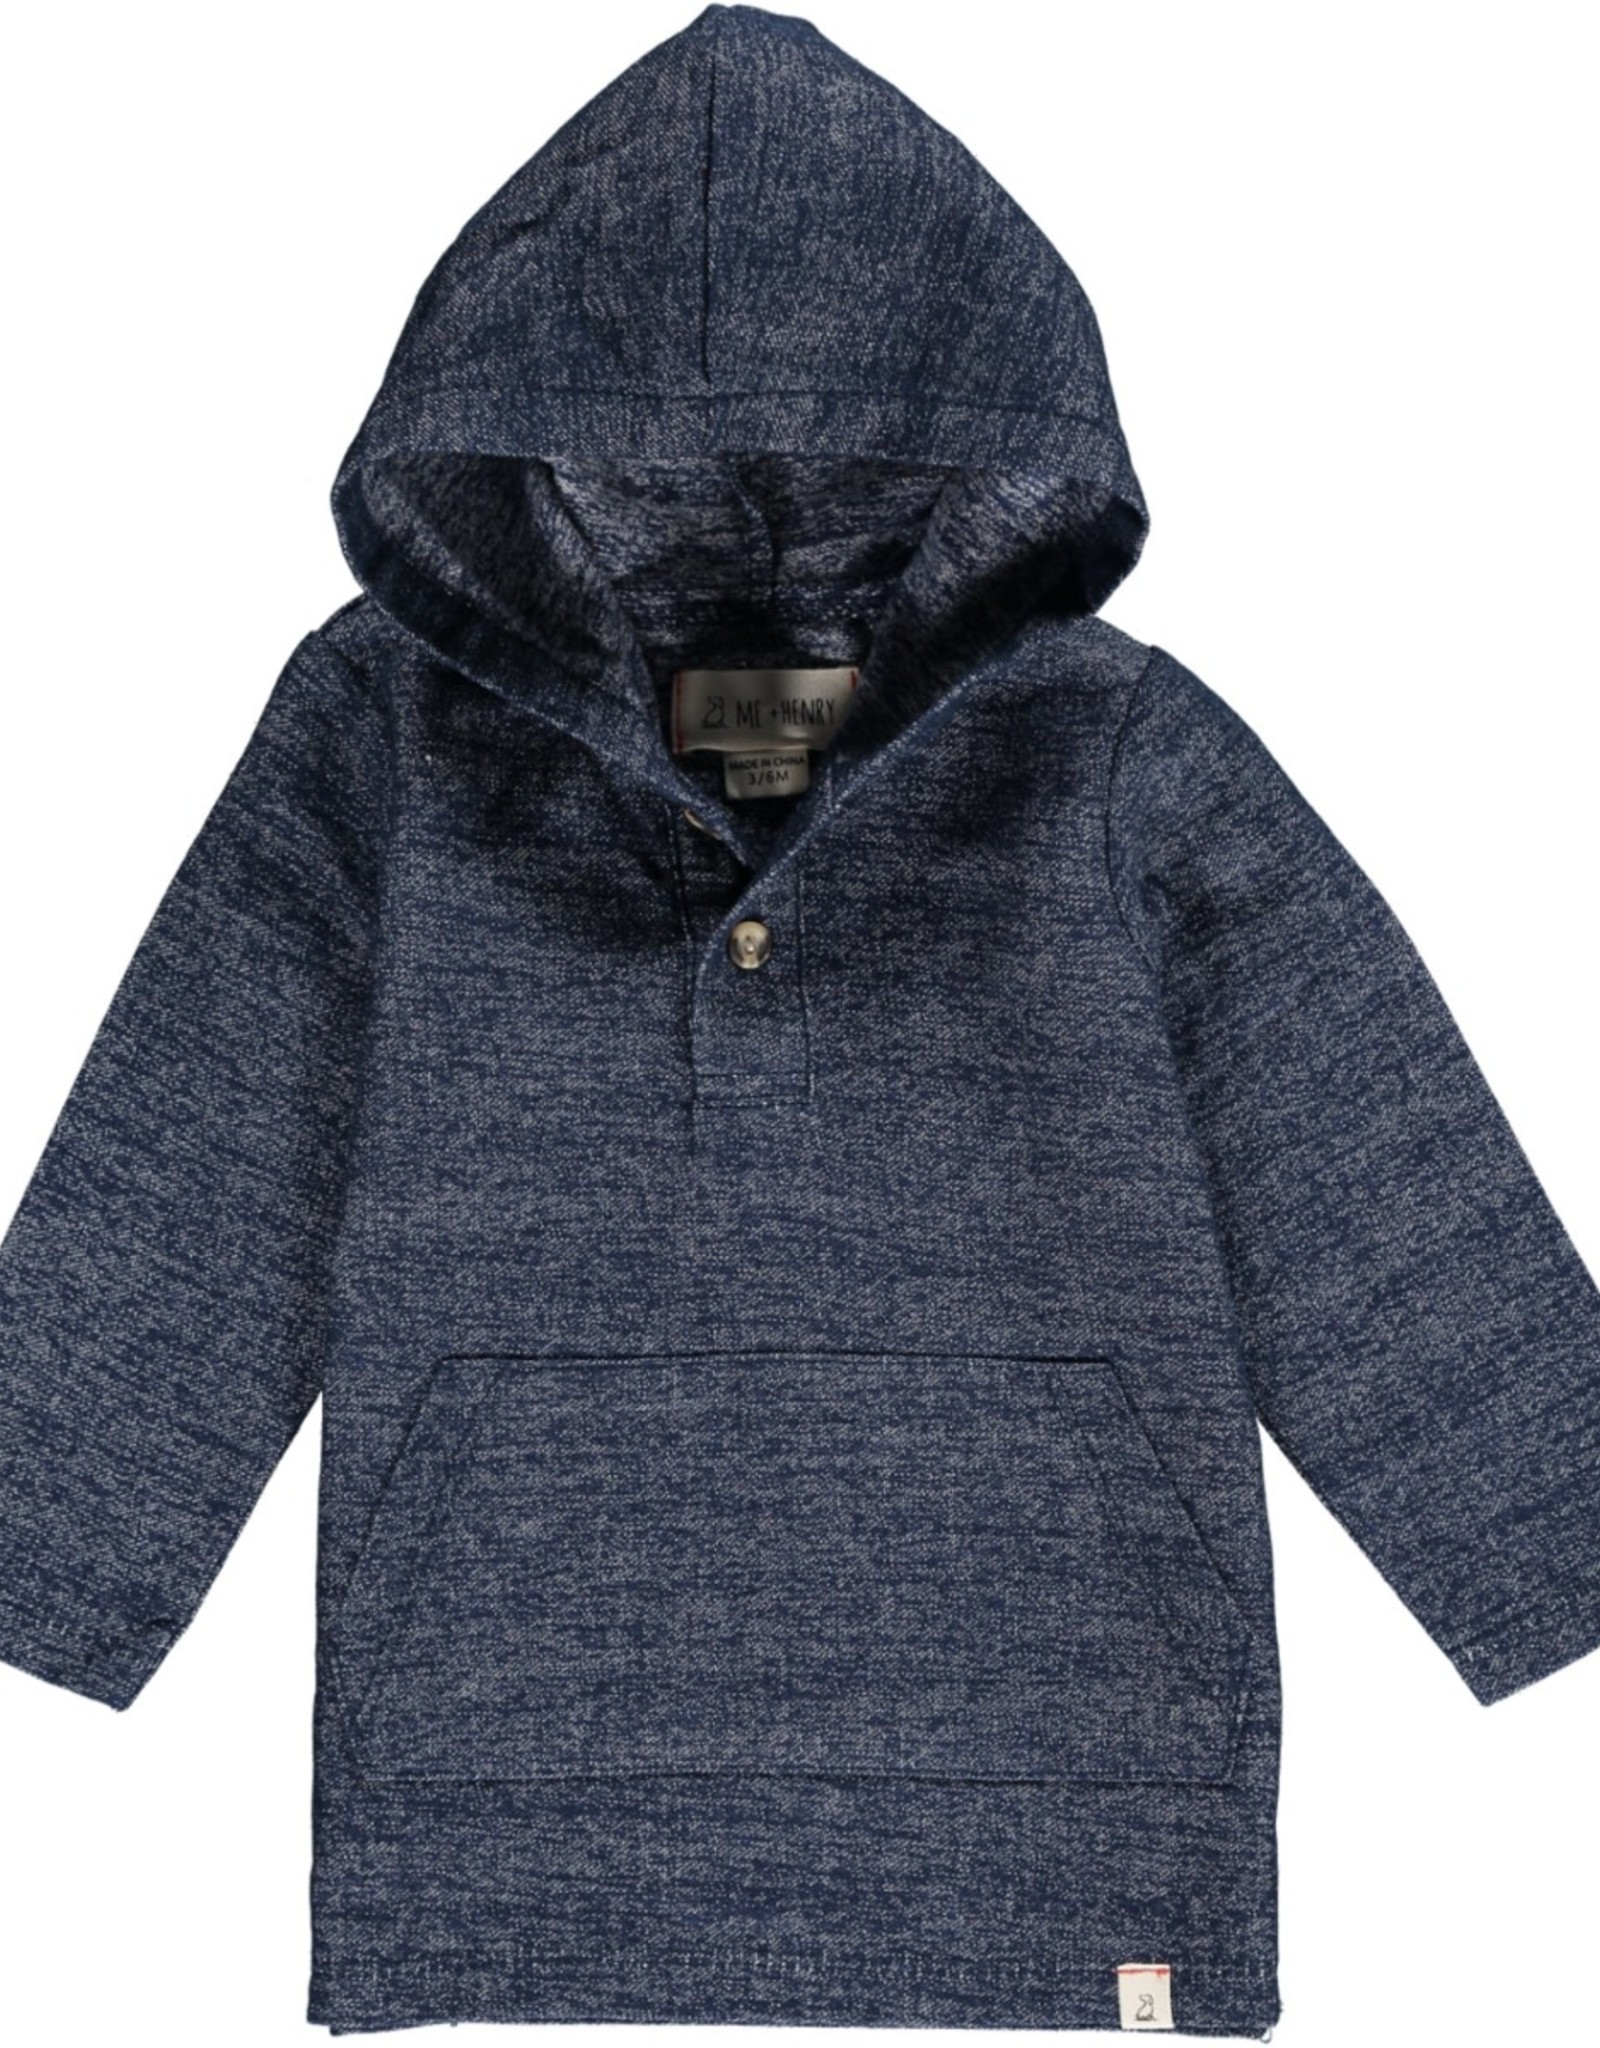 Navy hooded top